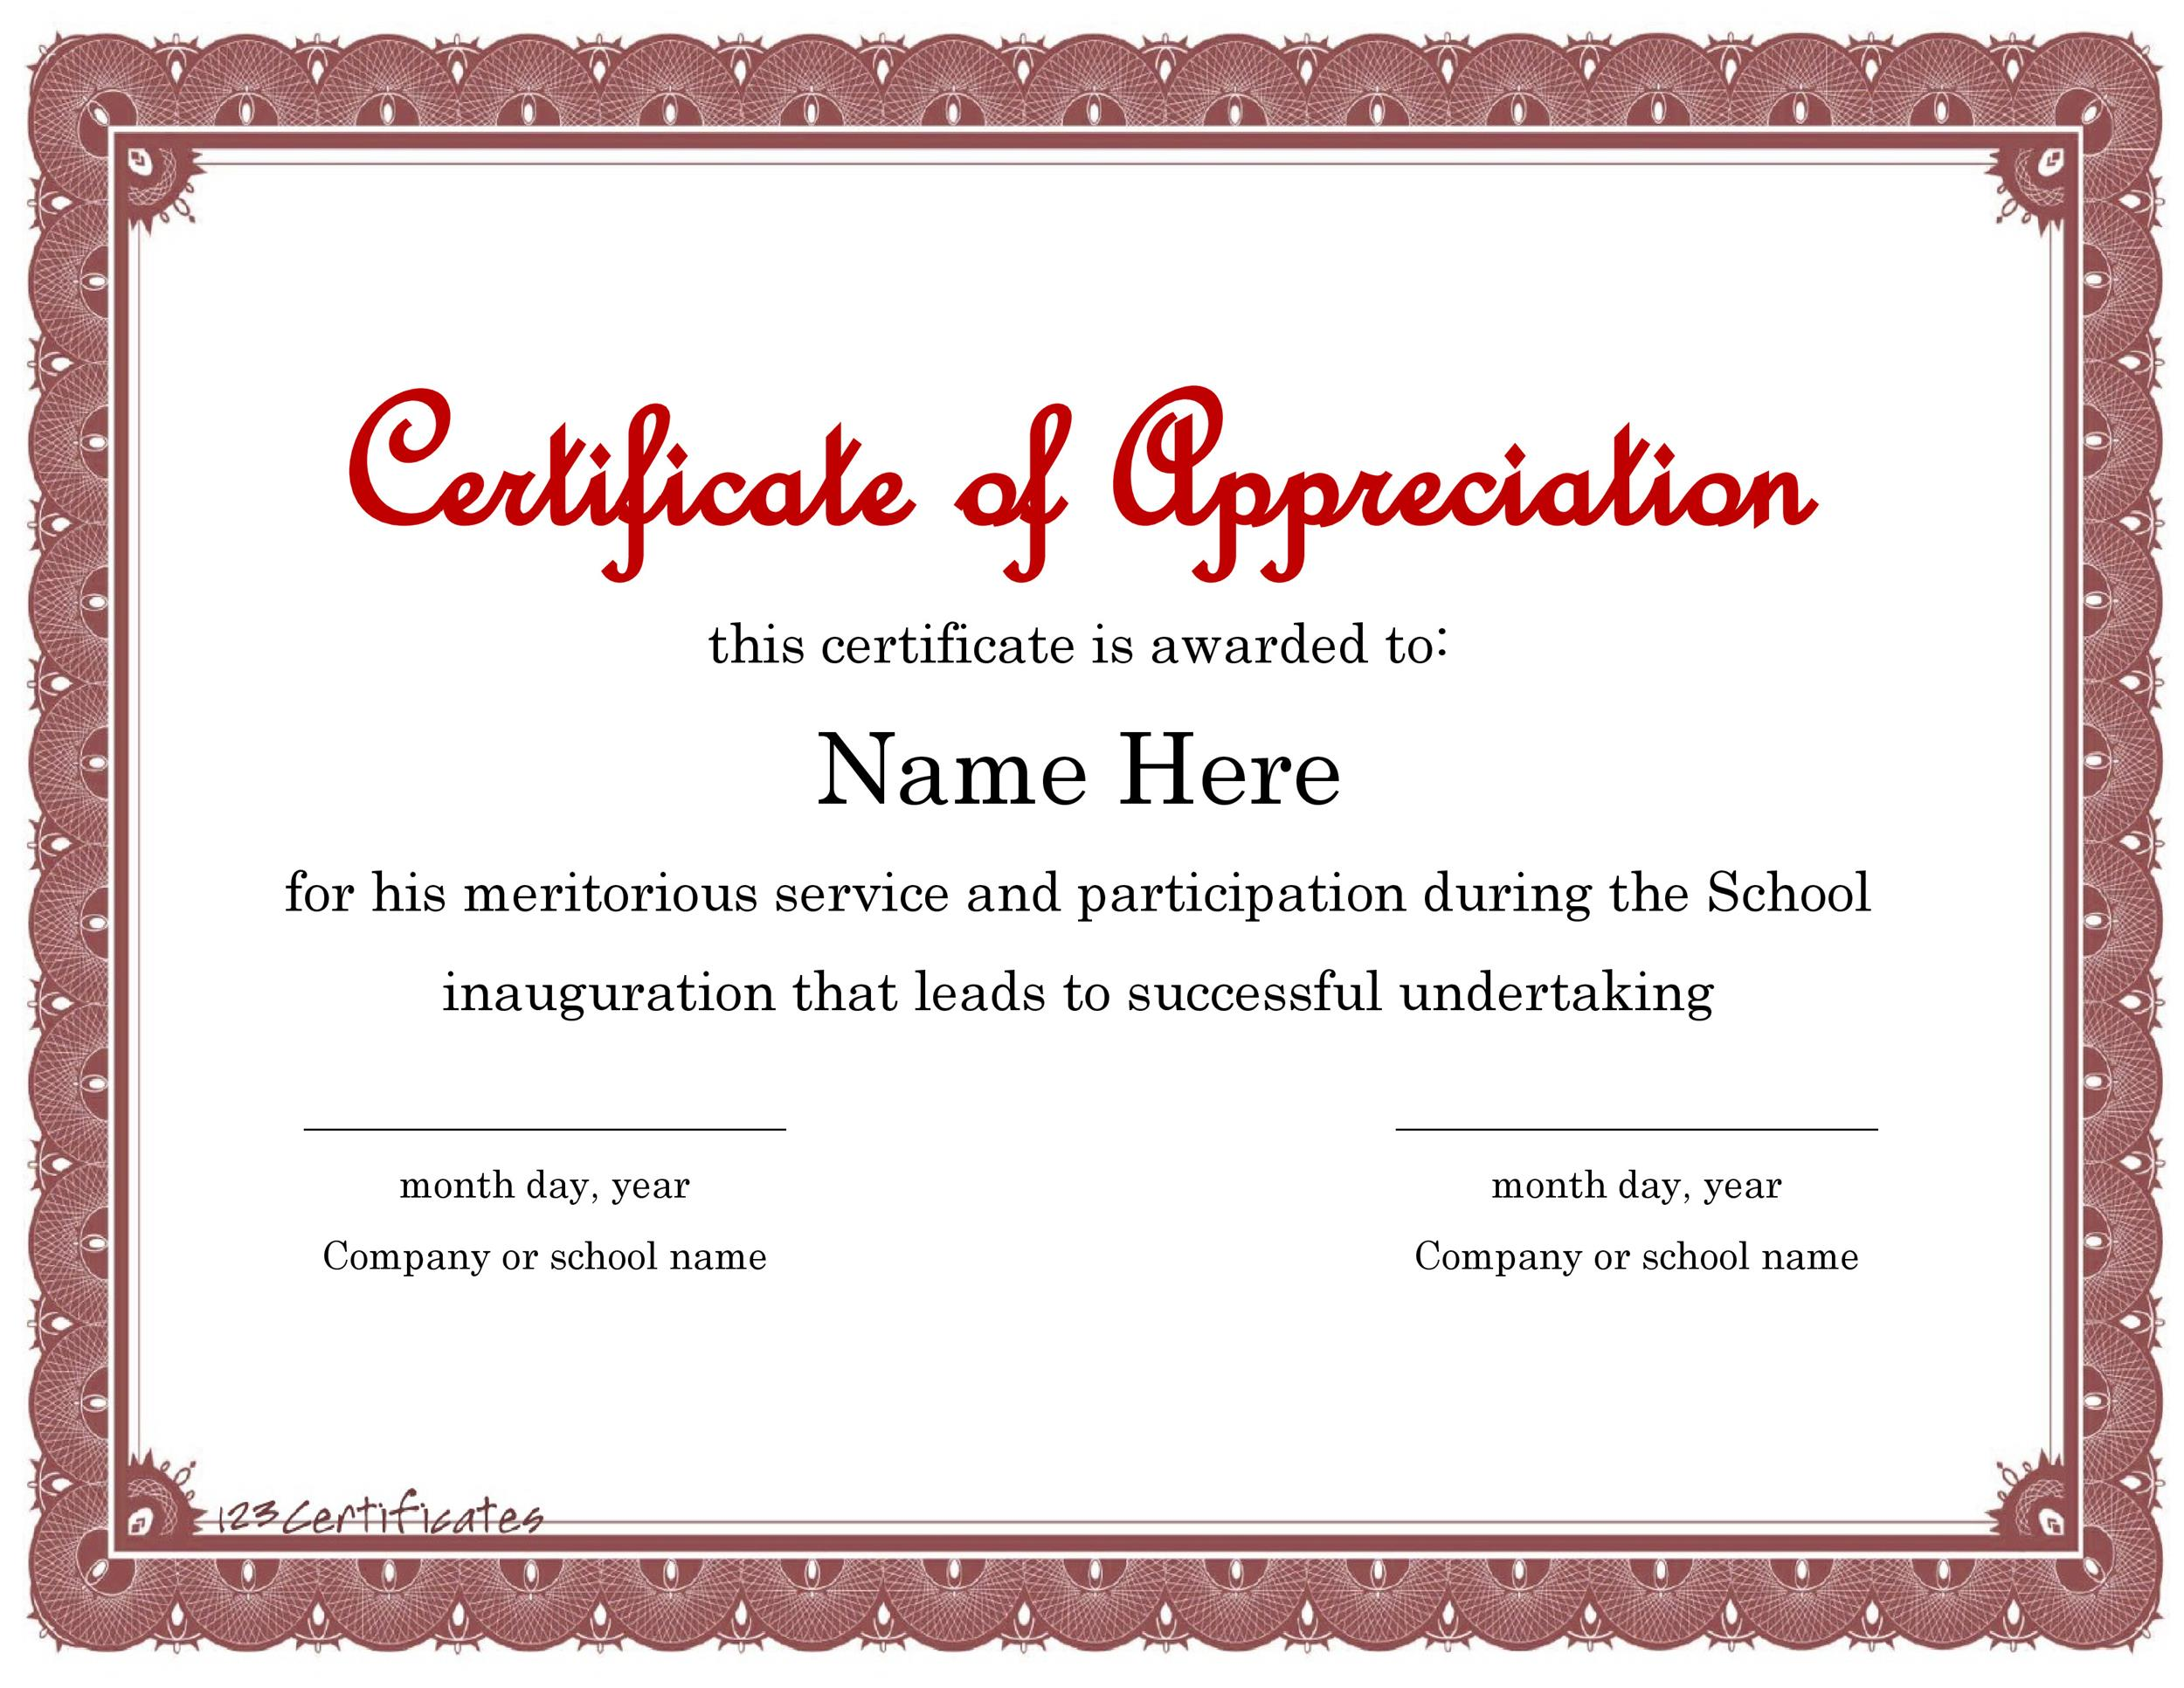 30 free certificate of appreciation templates and letters printable certificate of appreciation 01 yadclub Choice Image